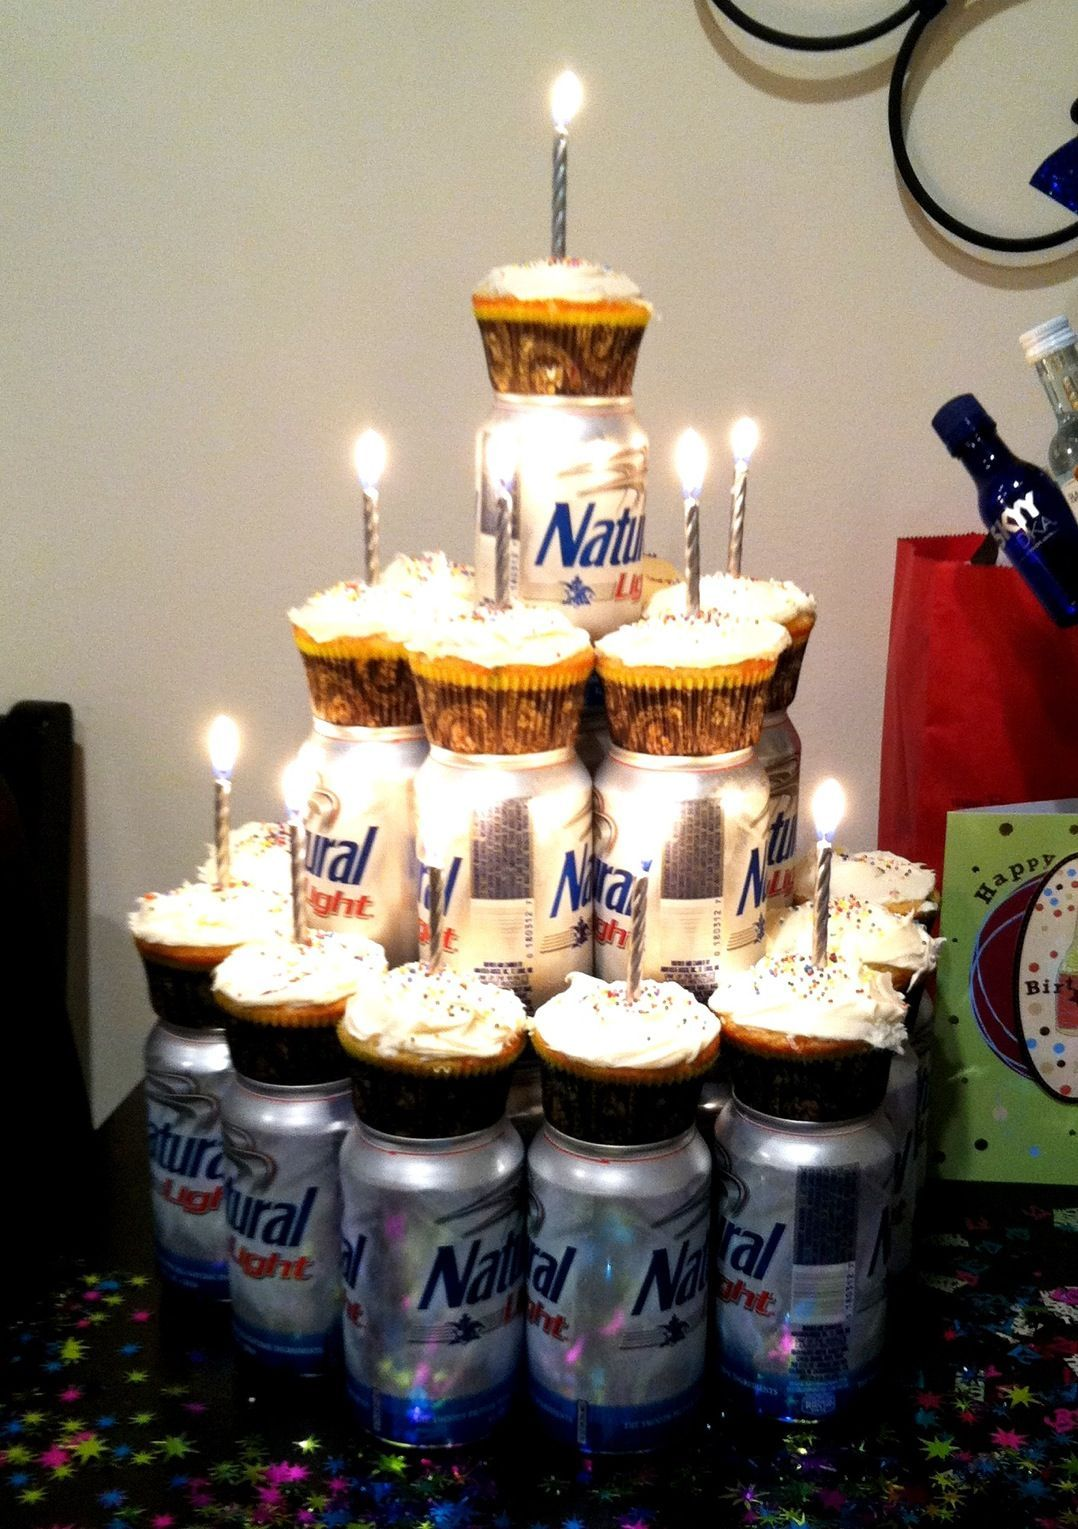 Cupcakes Your Mans Favorite Beer Cute Idea For My Husbands 30th Birthday Next Year